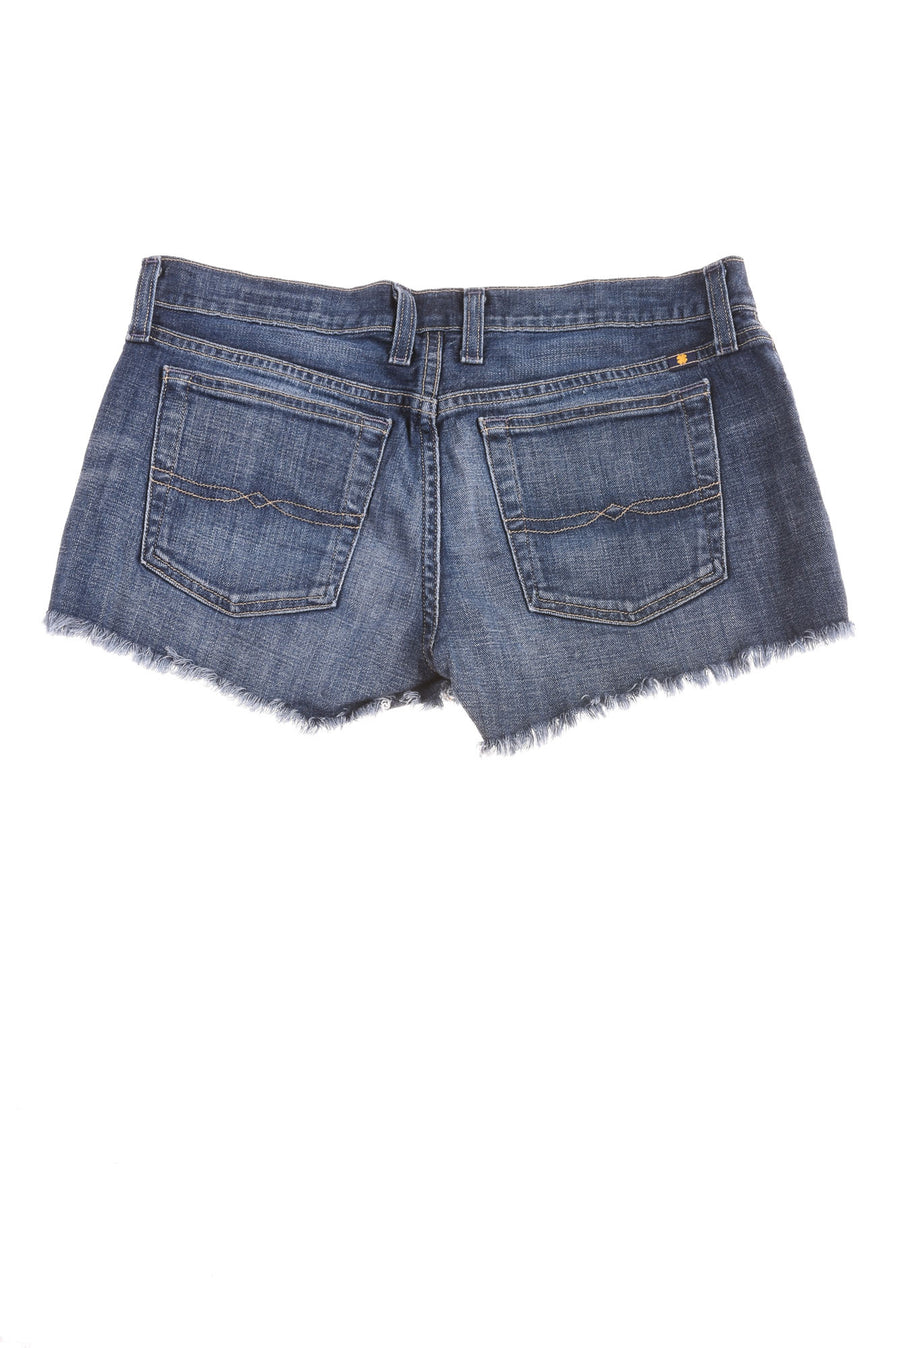 USED Lucky Brand Women's Shorts 26 Blue